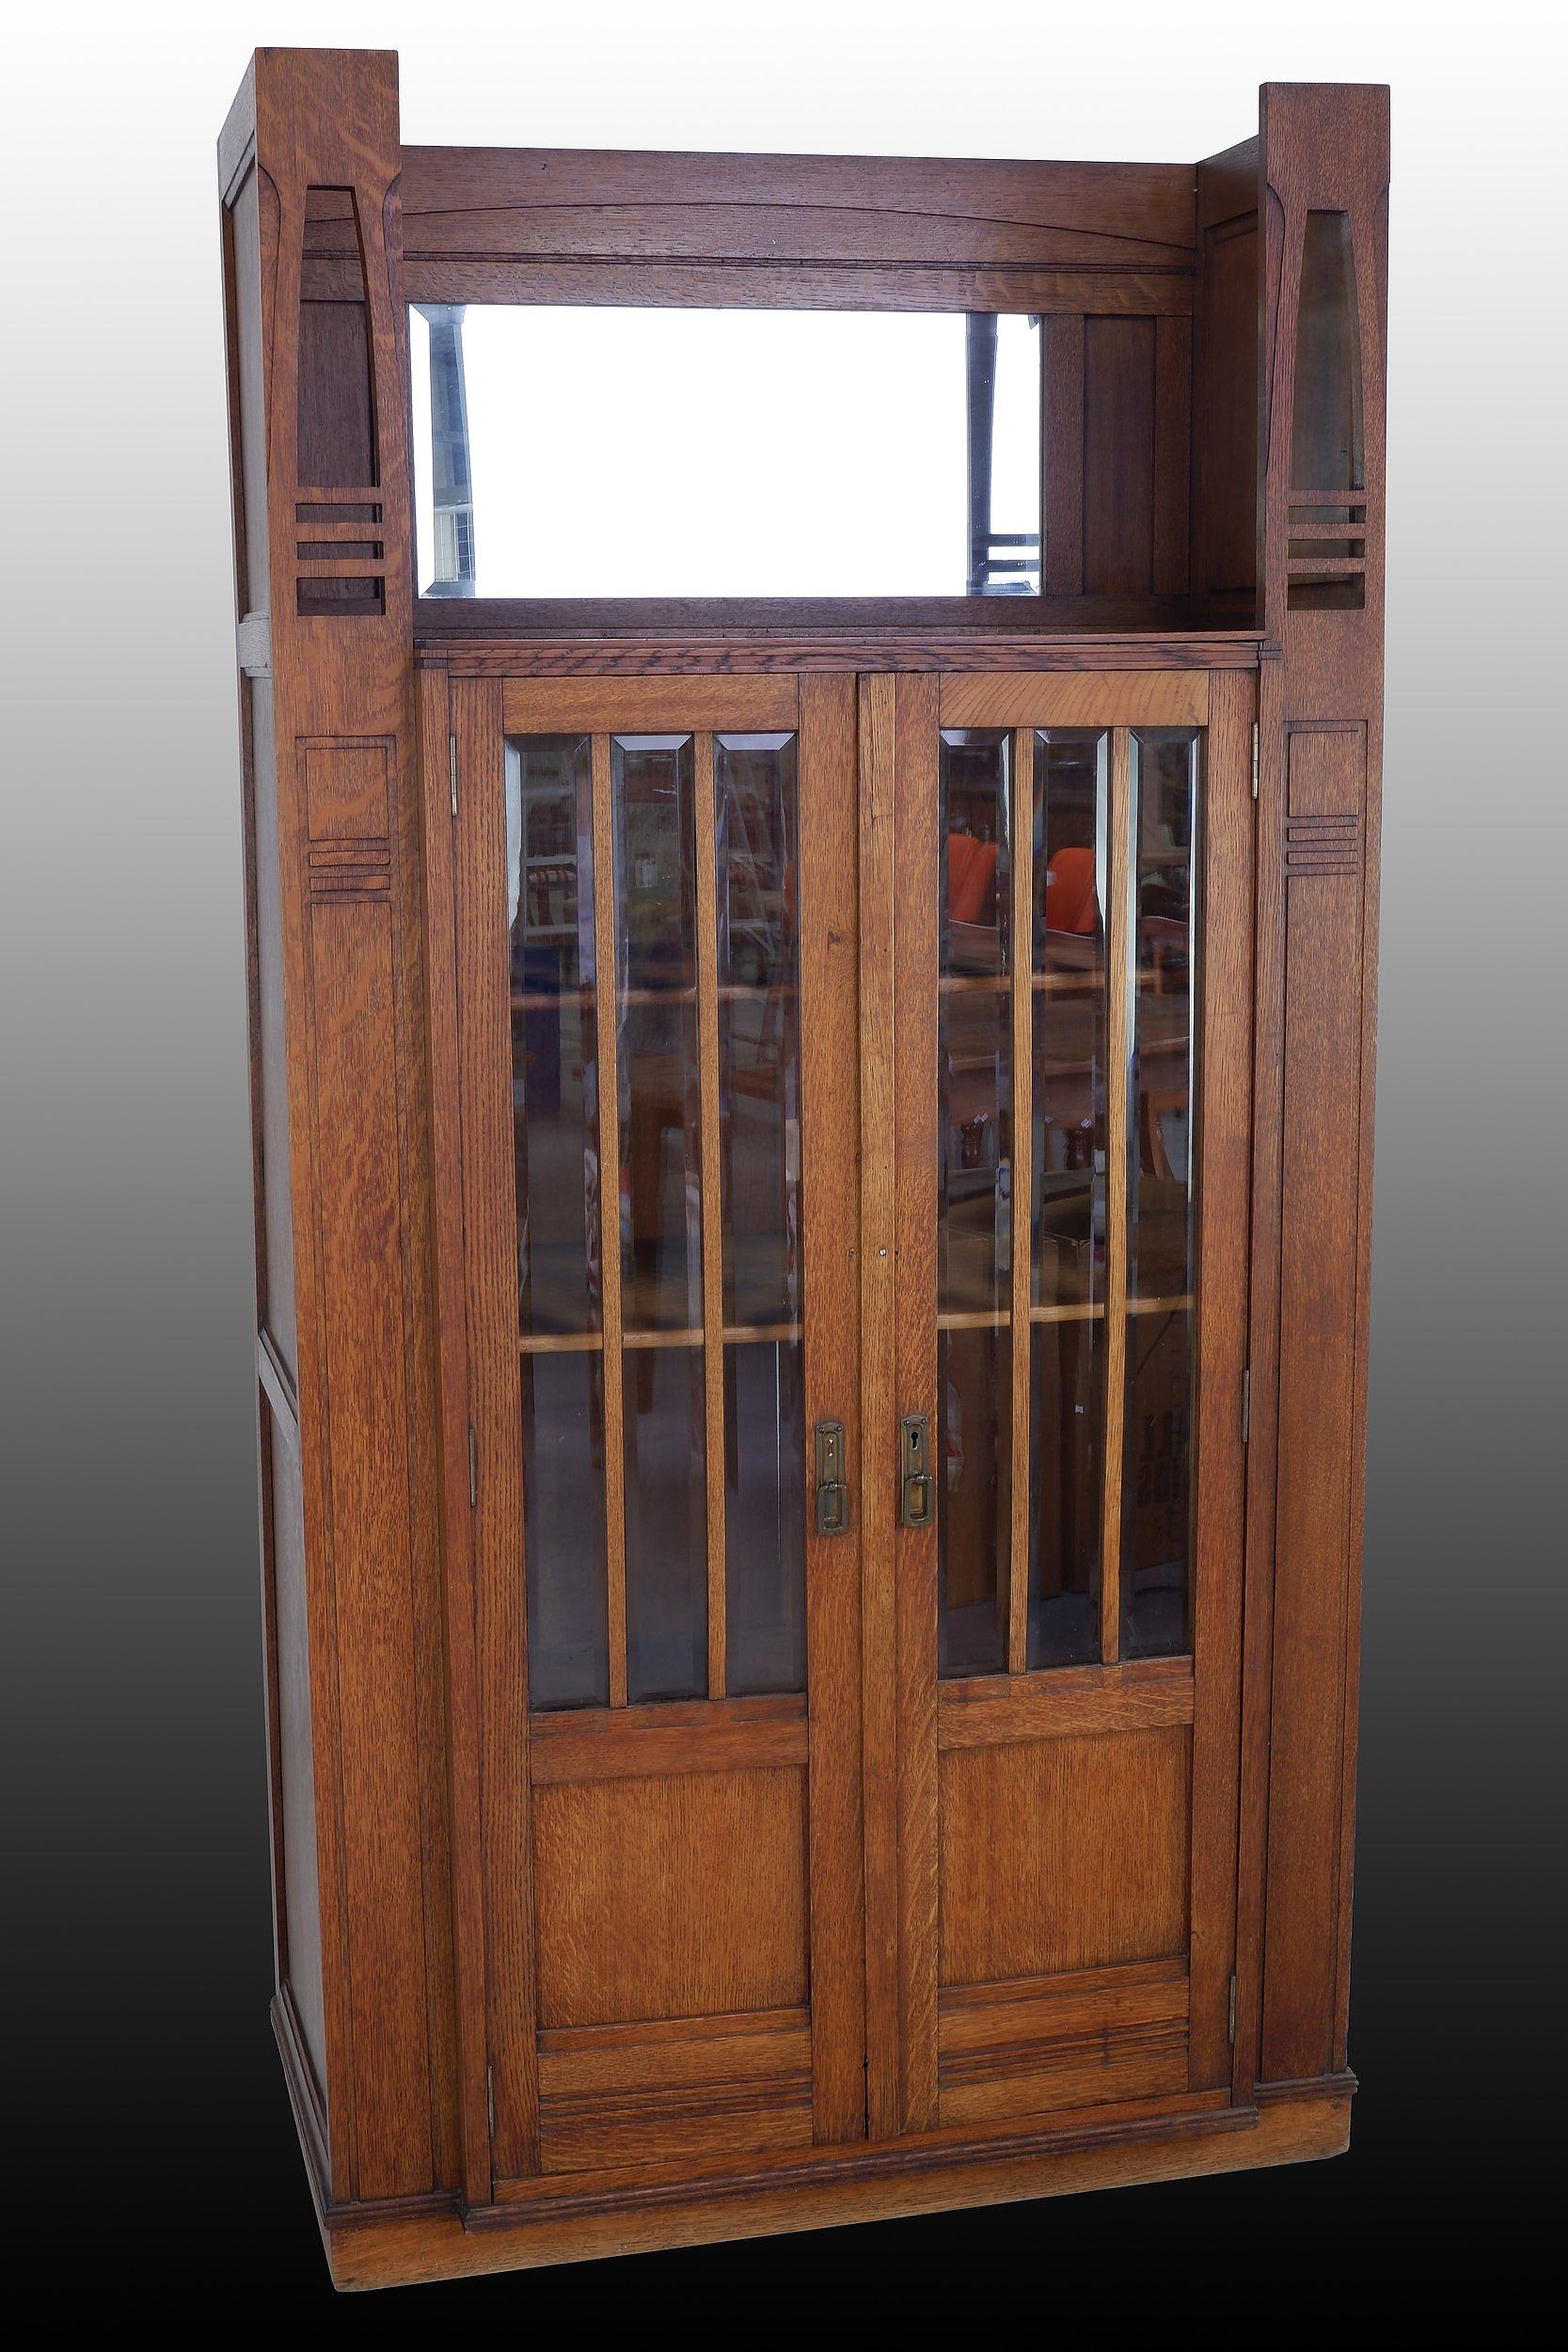 'Belgium Secessionist Full Oak Cabinet with Heavily Beveled Glass Panel Doors and Mirrored Back in Open Section Top - Circa 1910s'